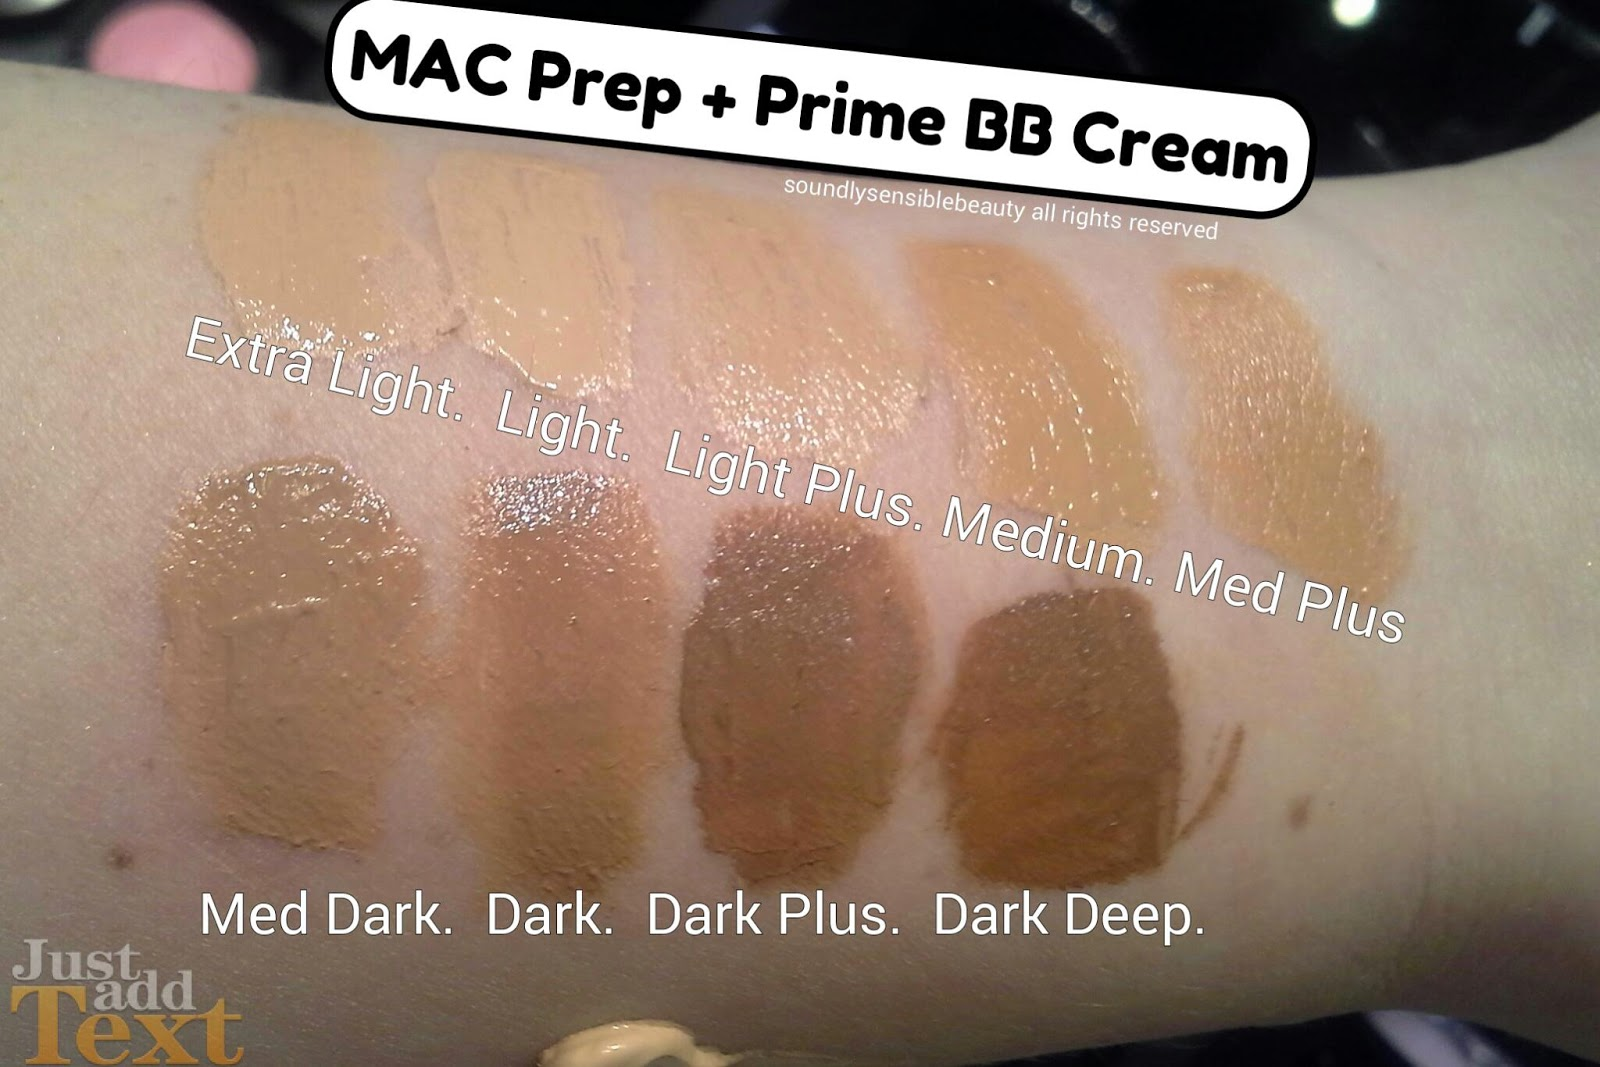 Prep + Prime BB Beauty Balm by MAC #5